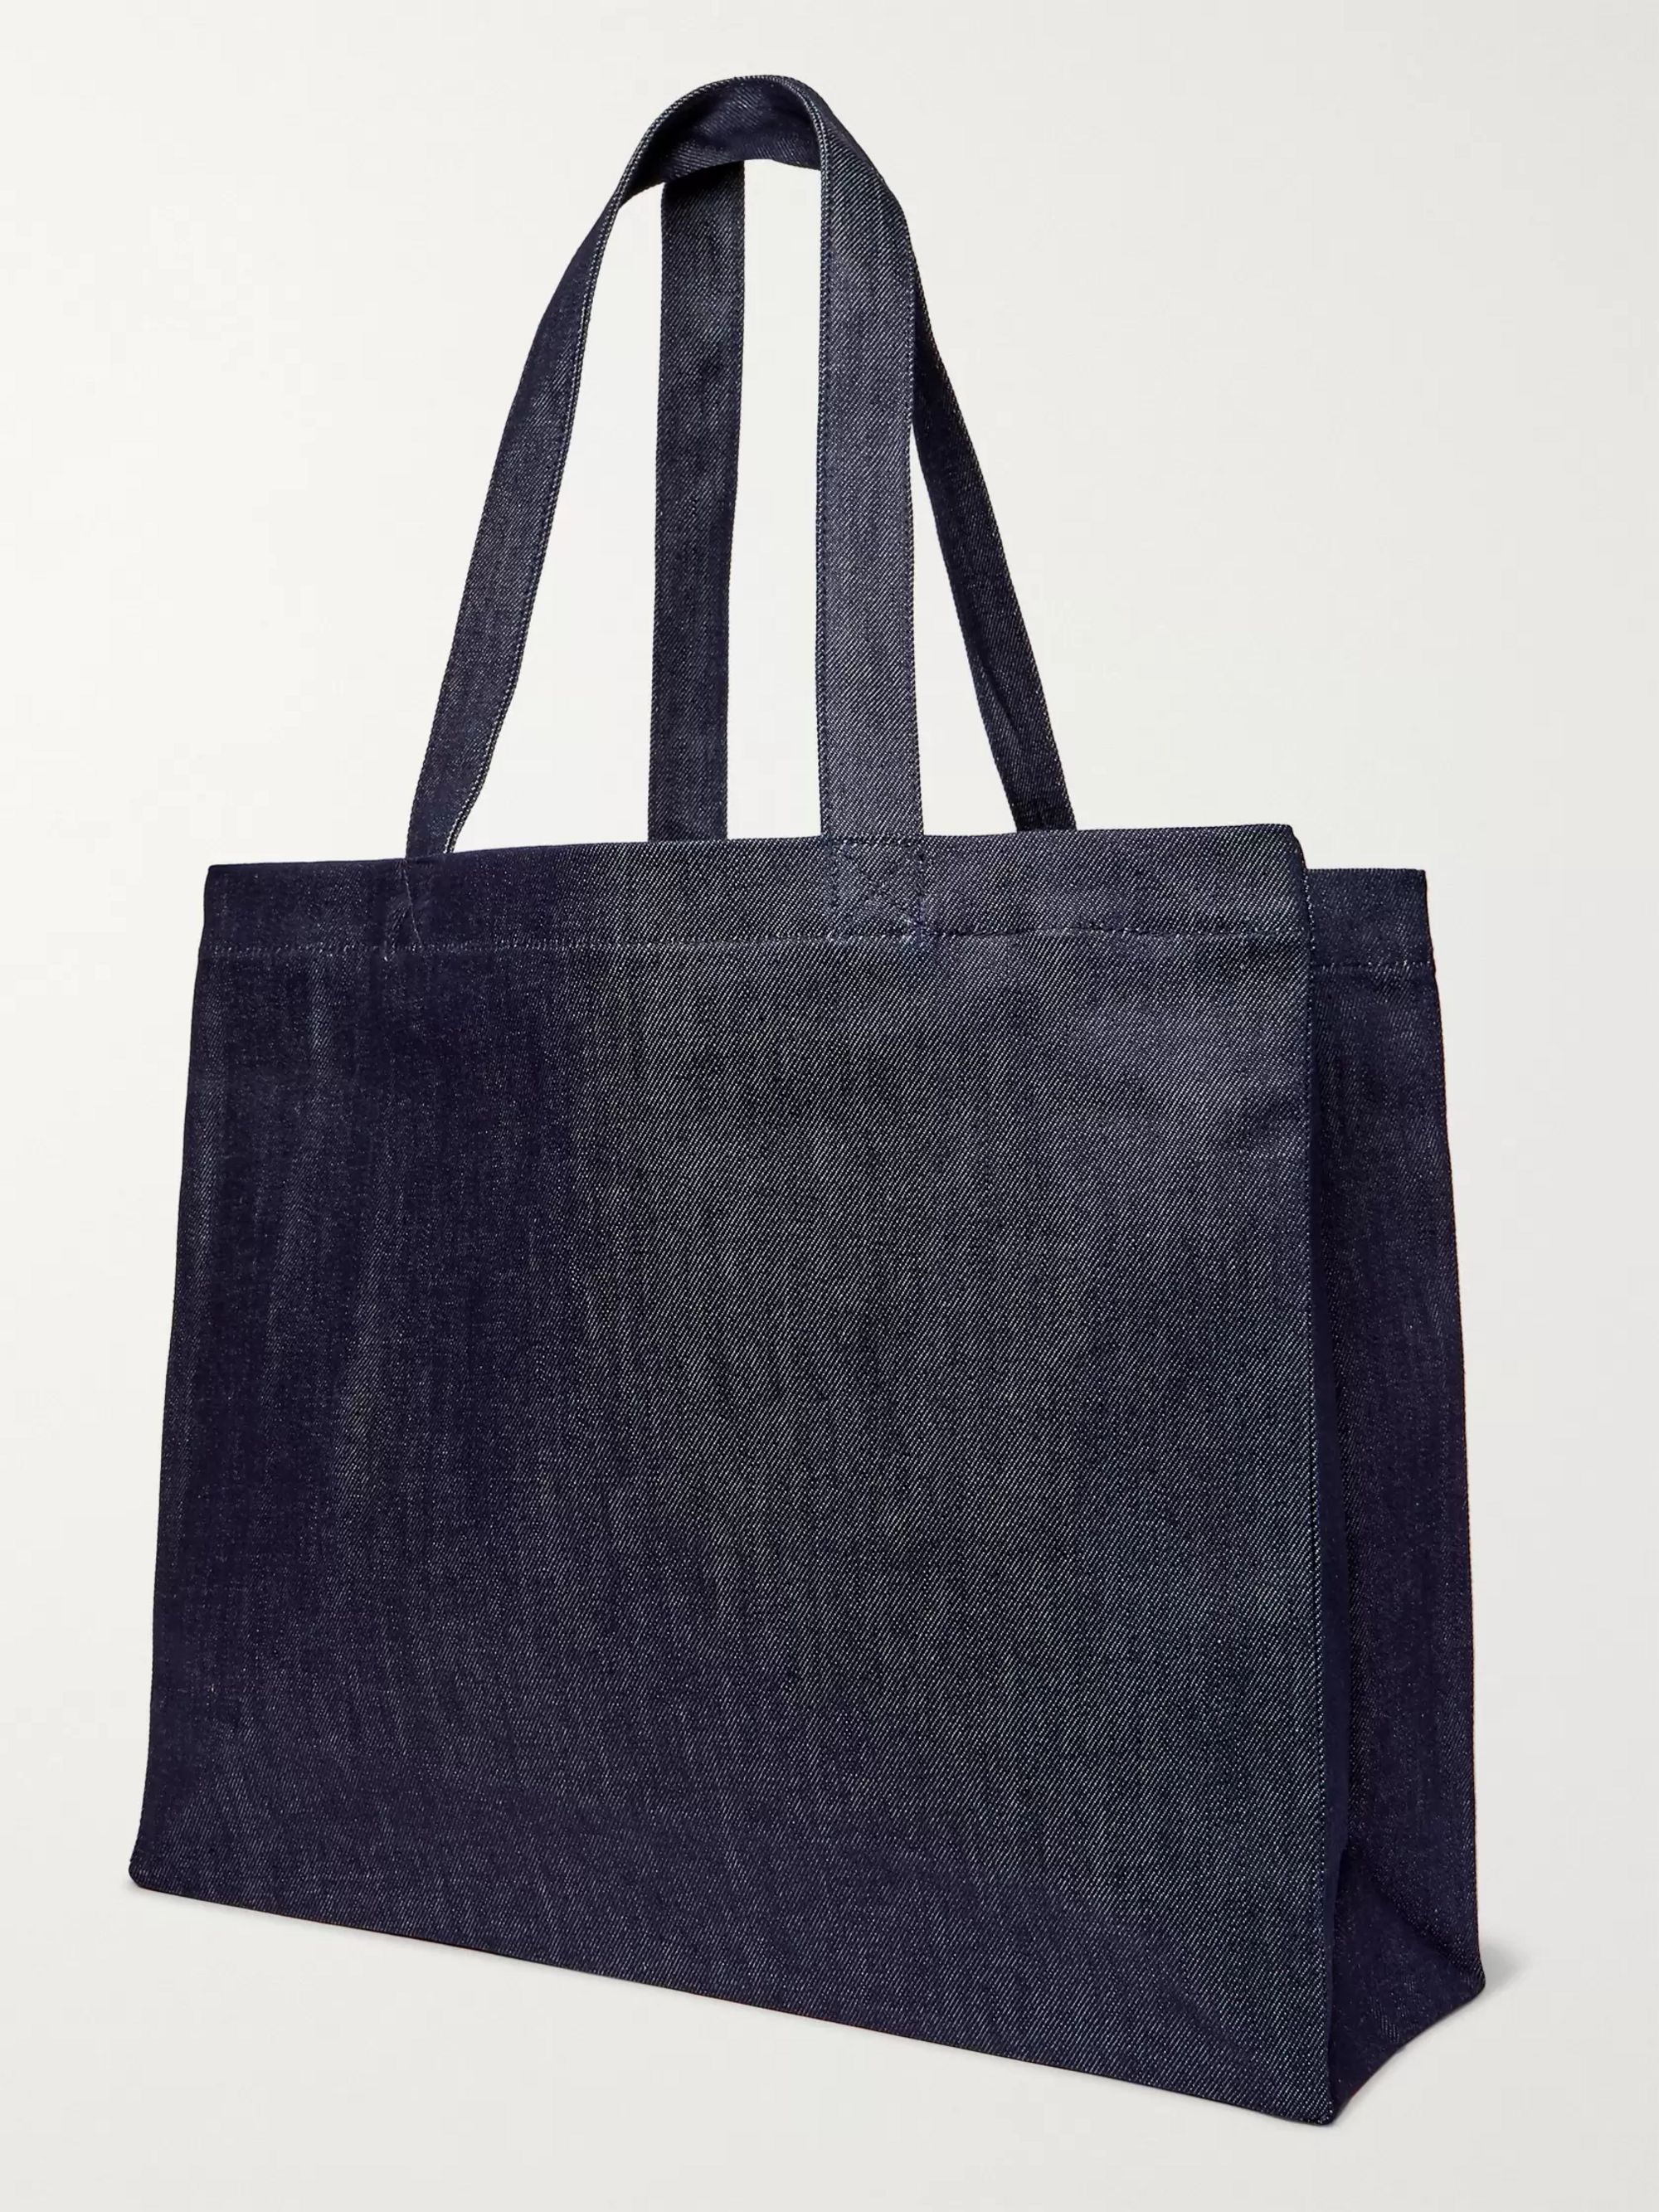 A.P.C. + JJJJound Logo-Print Denim Tote Bag